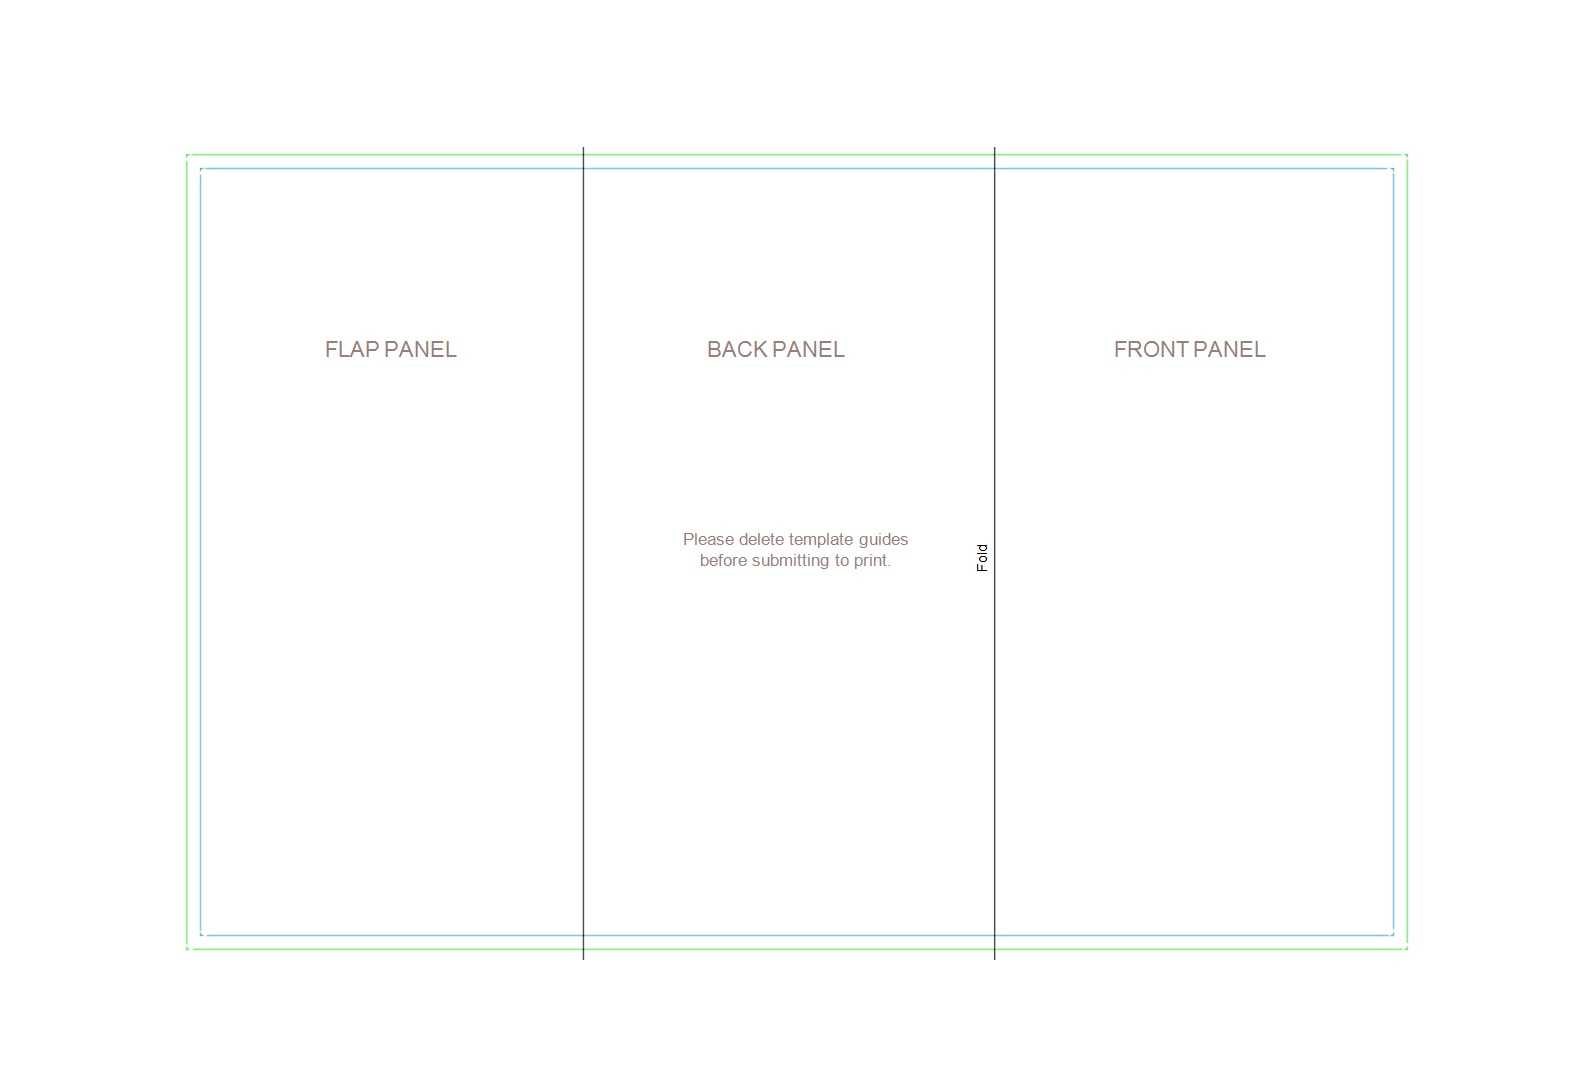 50 Free Pamphlet Templates [Word / Google Docs] ᐅ Templatelab Inside Brochure Template For Google Docs